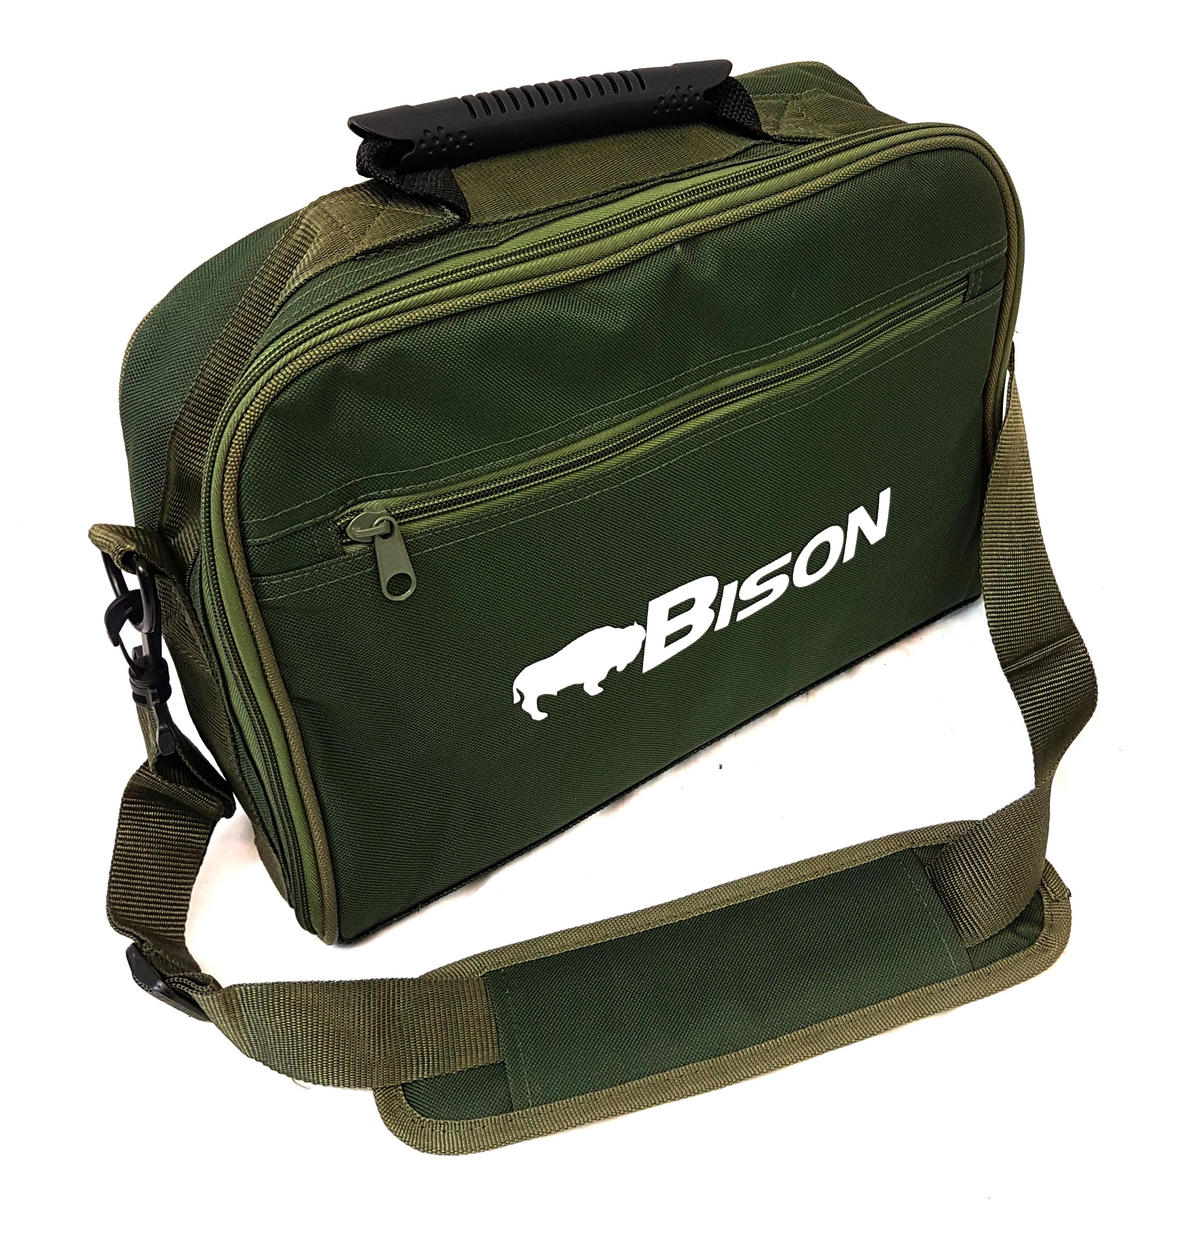 BISON SIX FLY FISHING REEL CARRY CASE